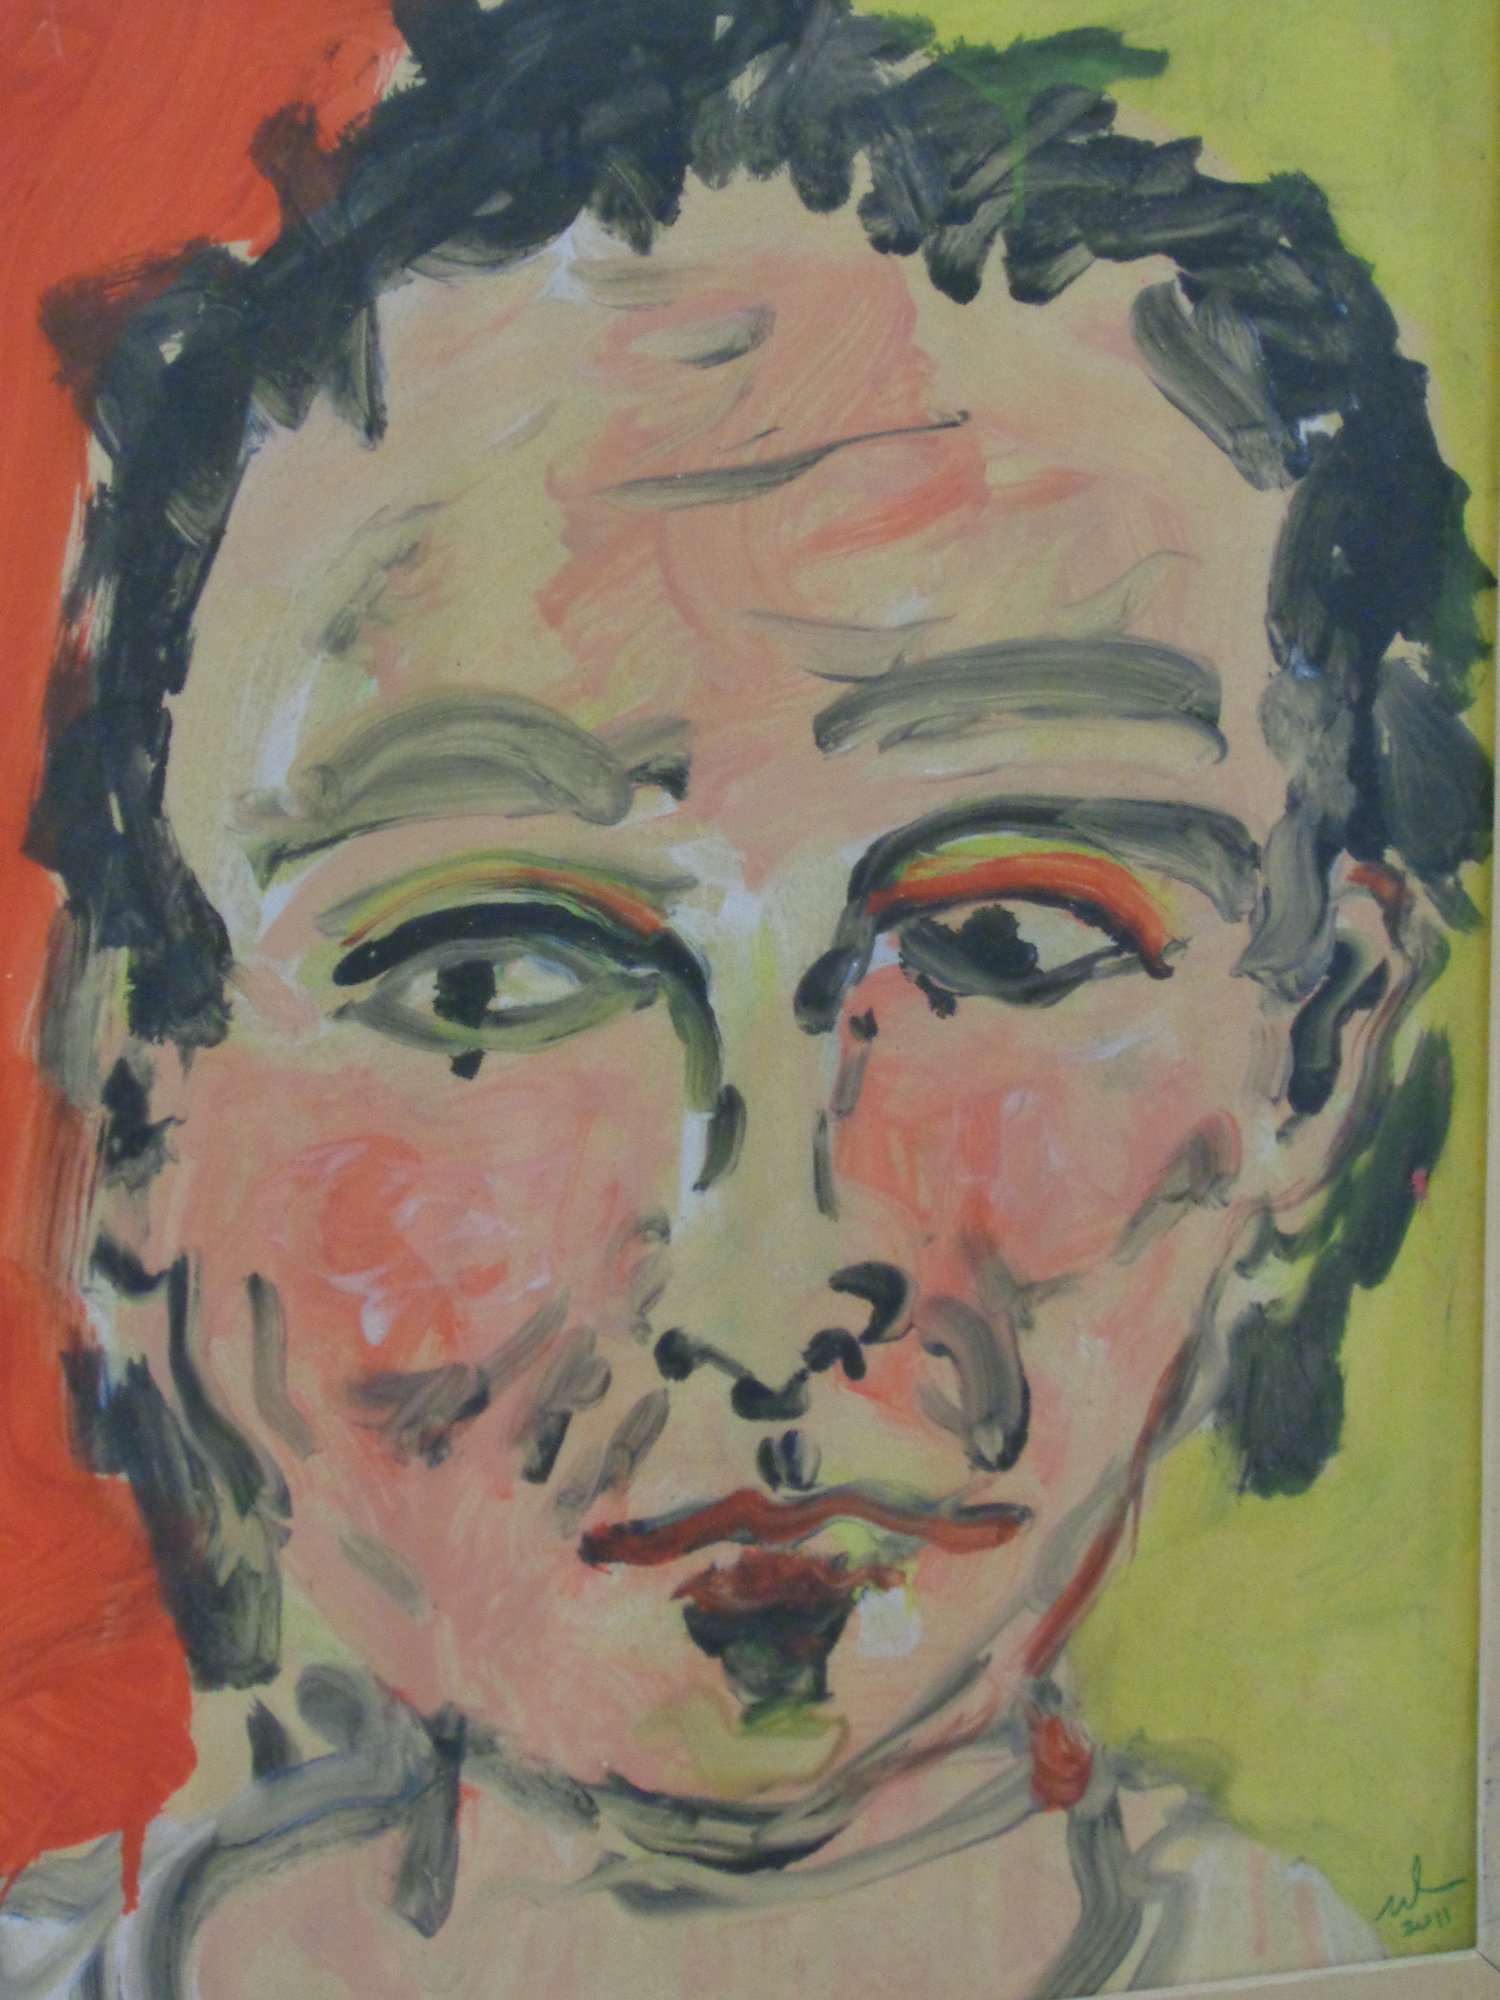 Self Portrait - Oil on paper 2010